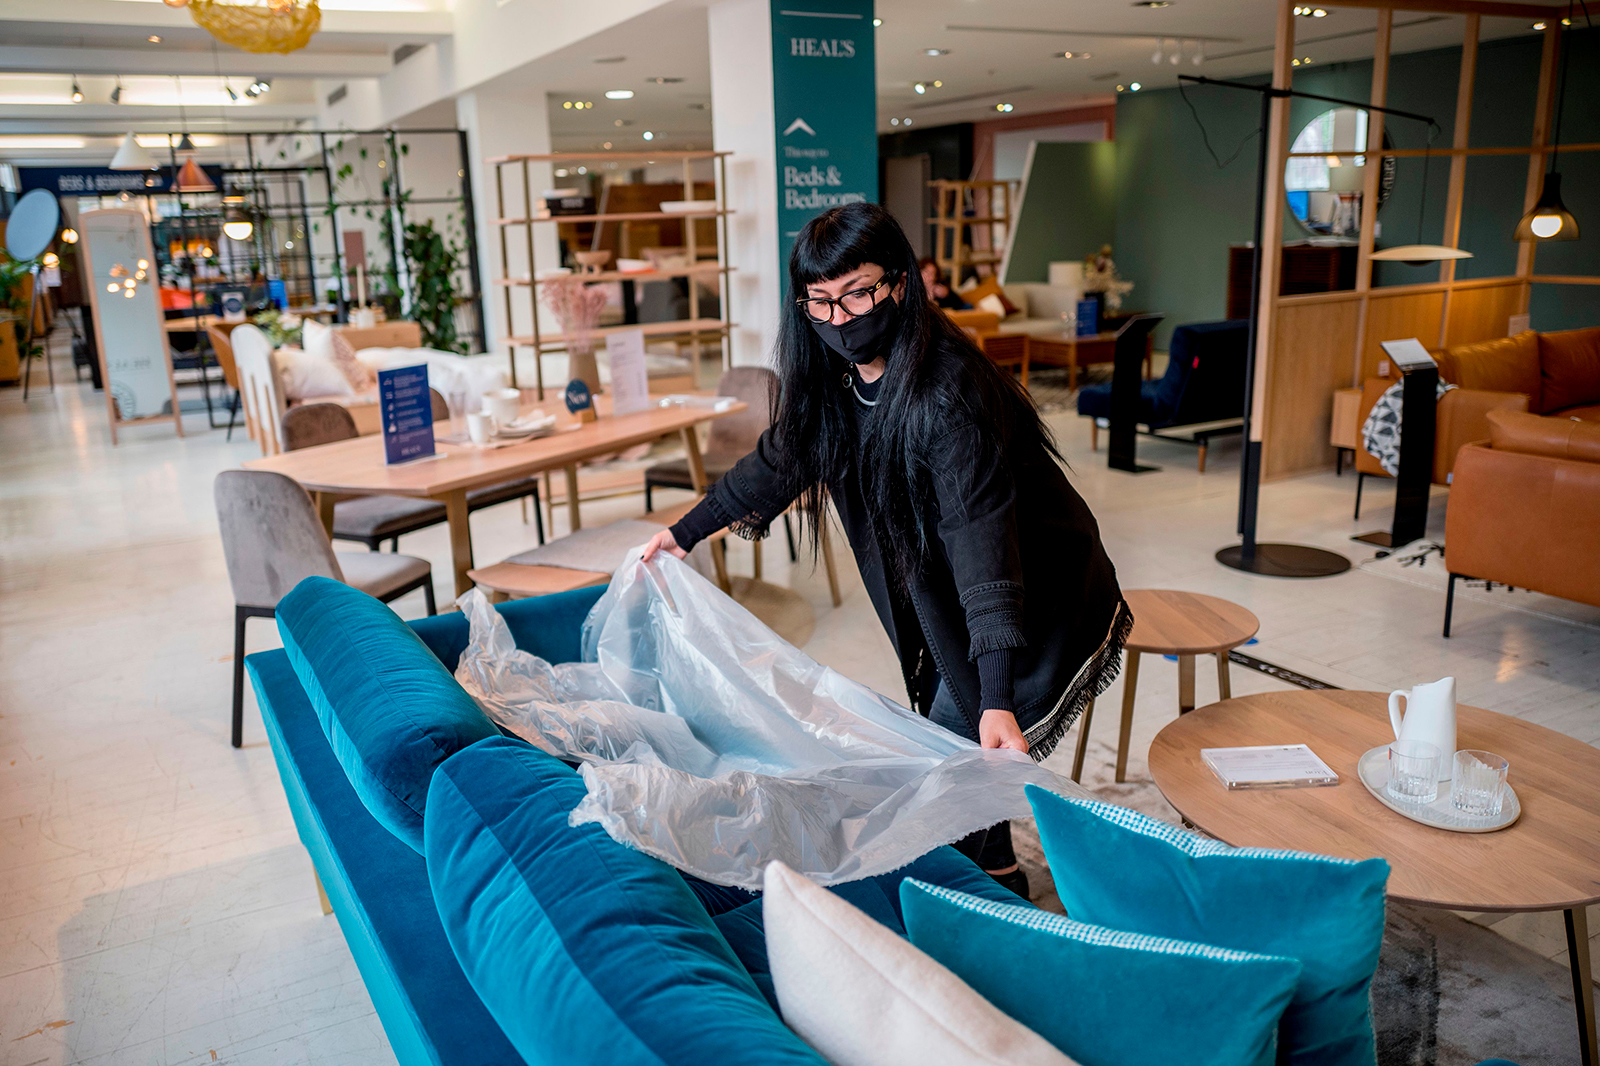 A woman demonstrates the use of plastic film for customers to test sofas, at the re-opened Heal's flagship store in central London on June 8.